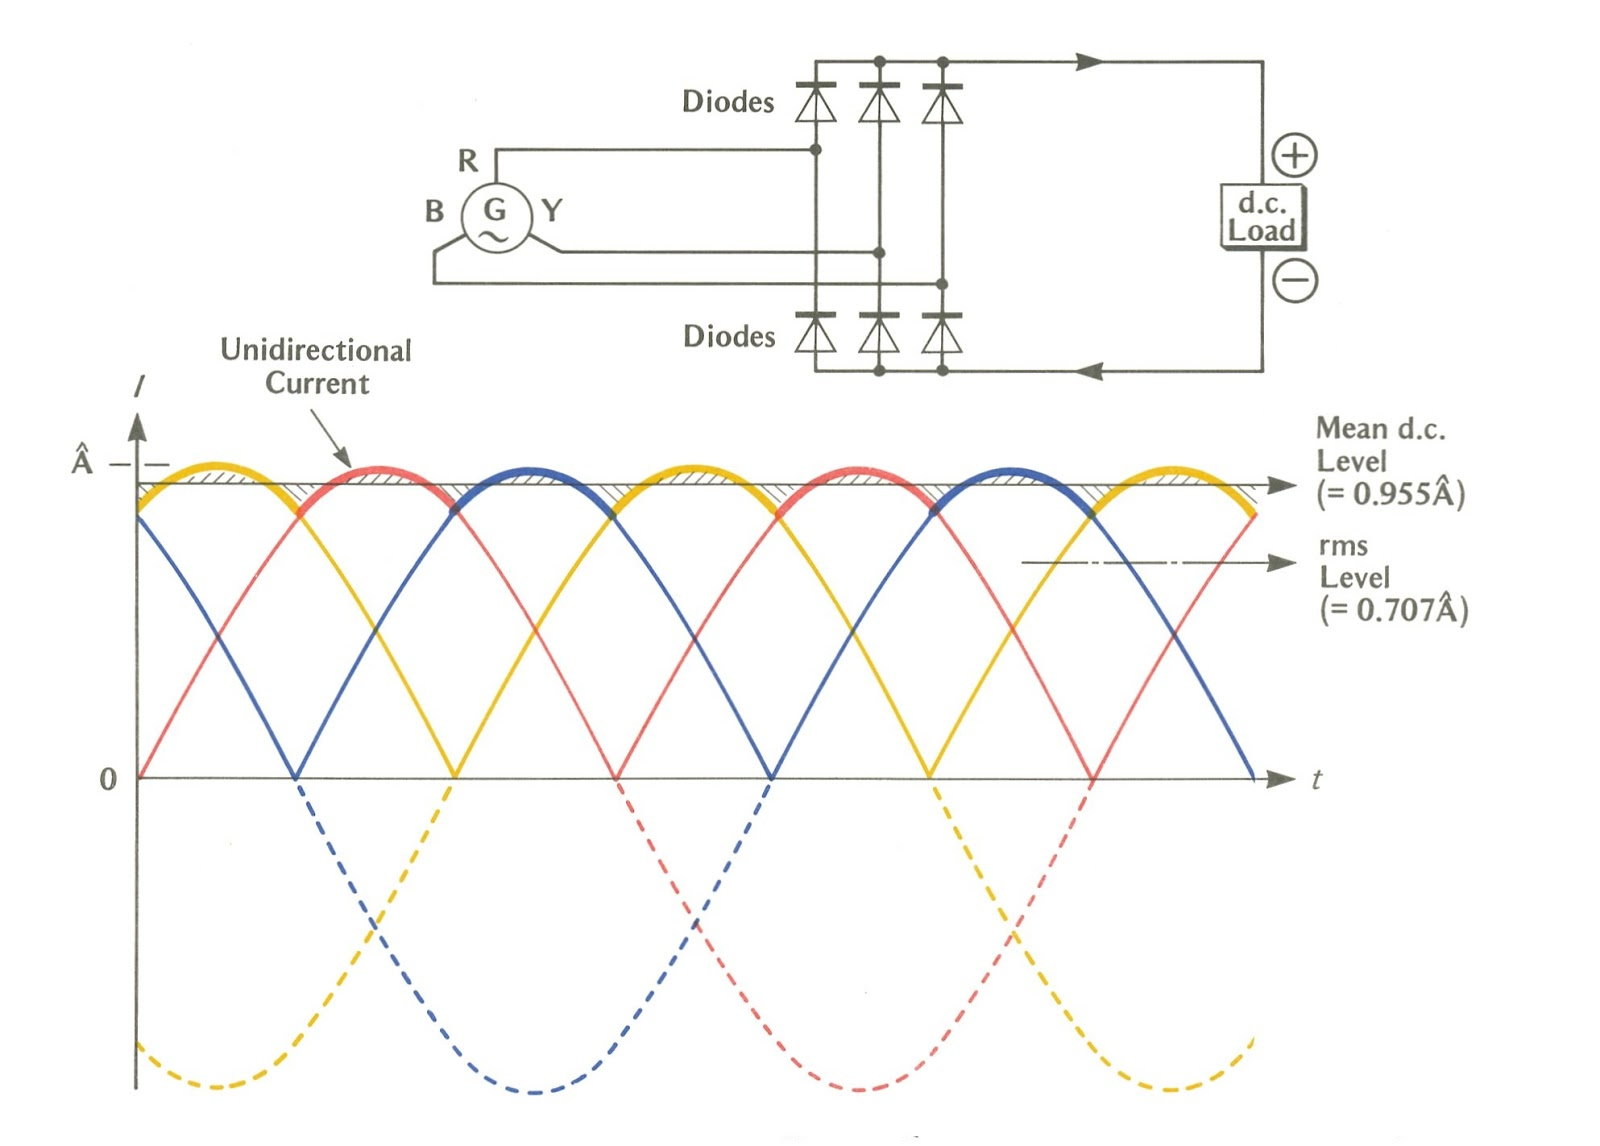 small resolution of here we have standard 3 phase rectifier with 6 diodes